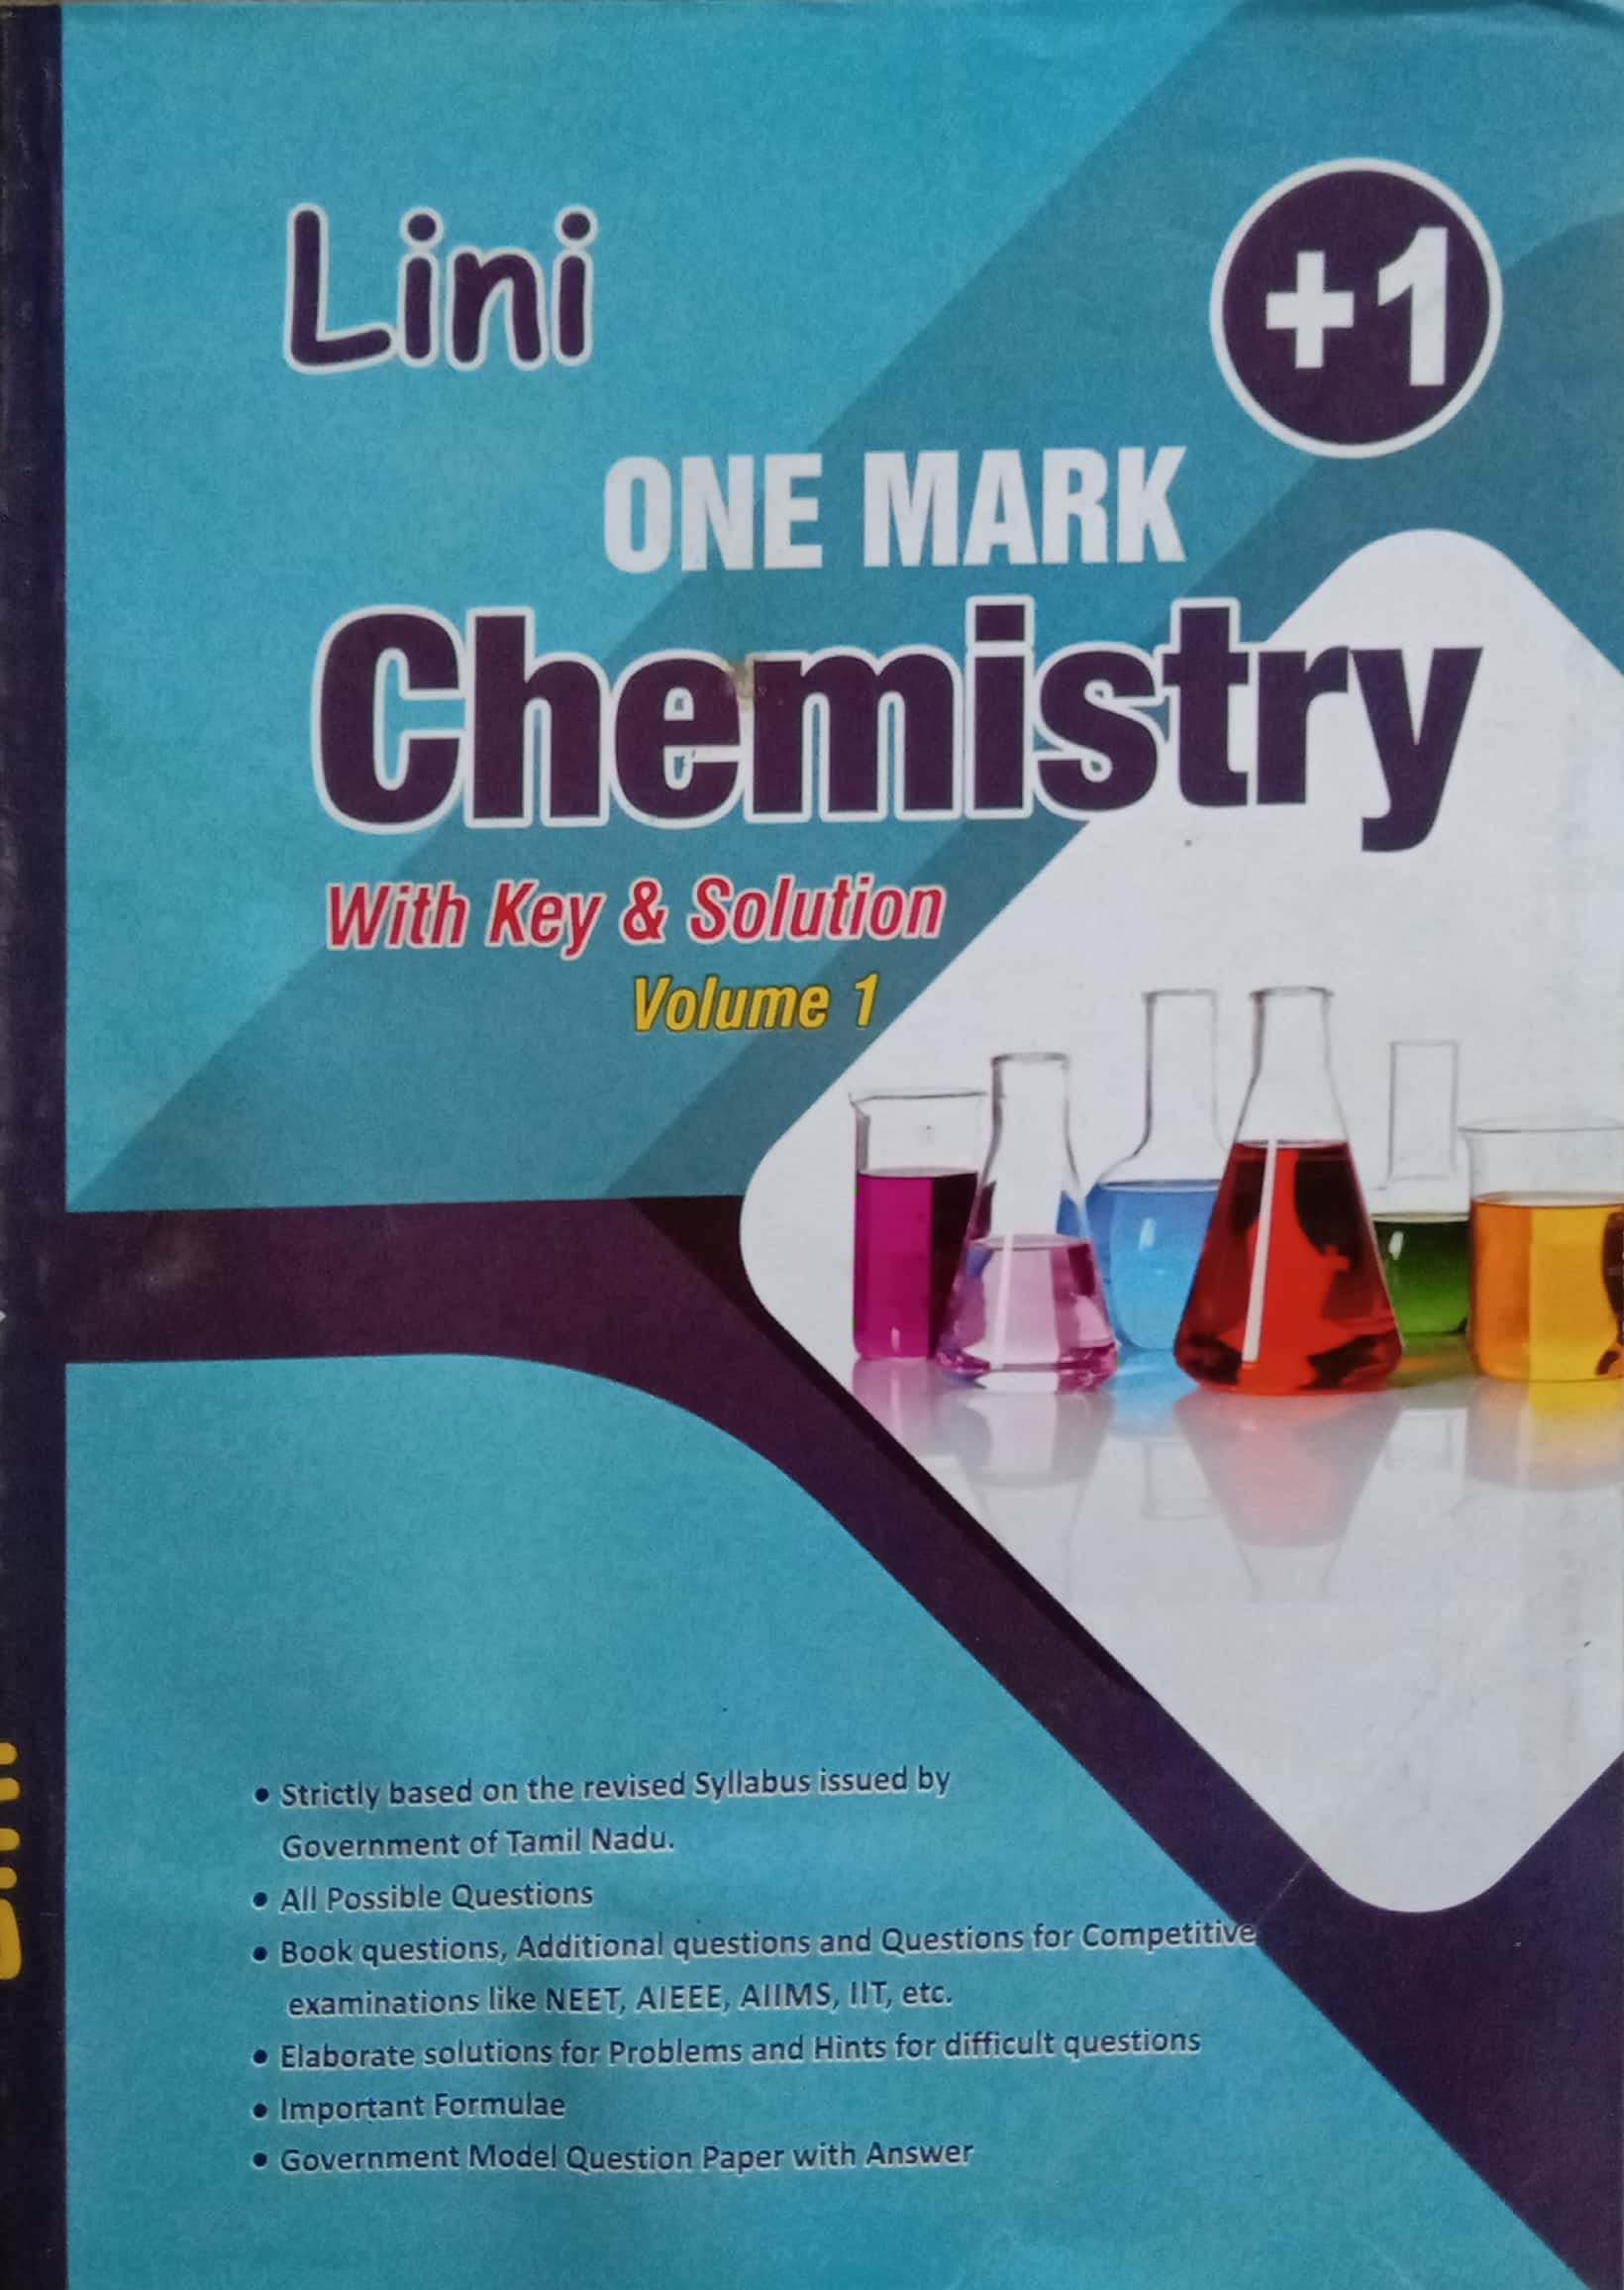 Routemybook - Buy 11th Lini Chemistry 1 Mark Q-Answers ...